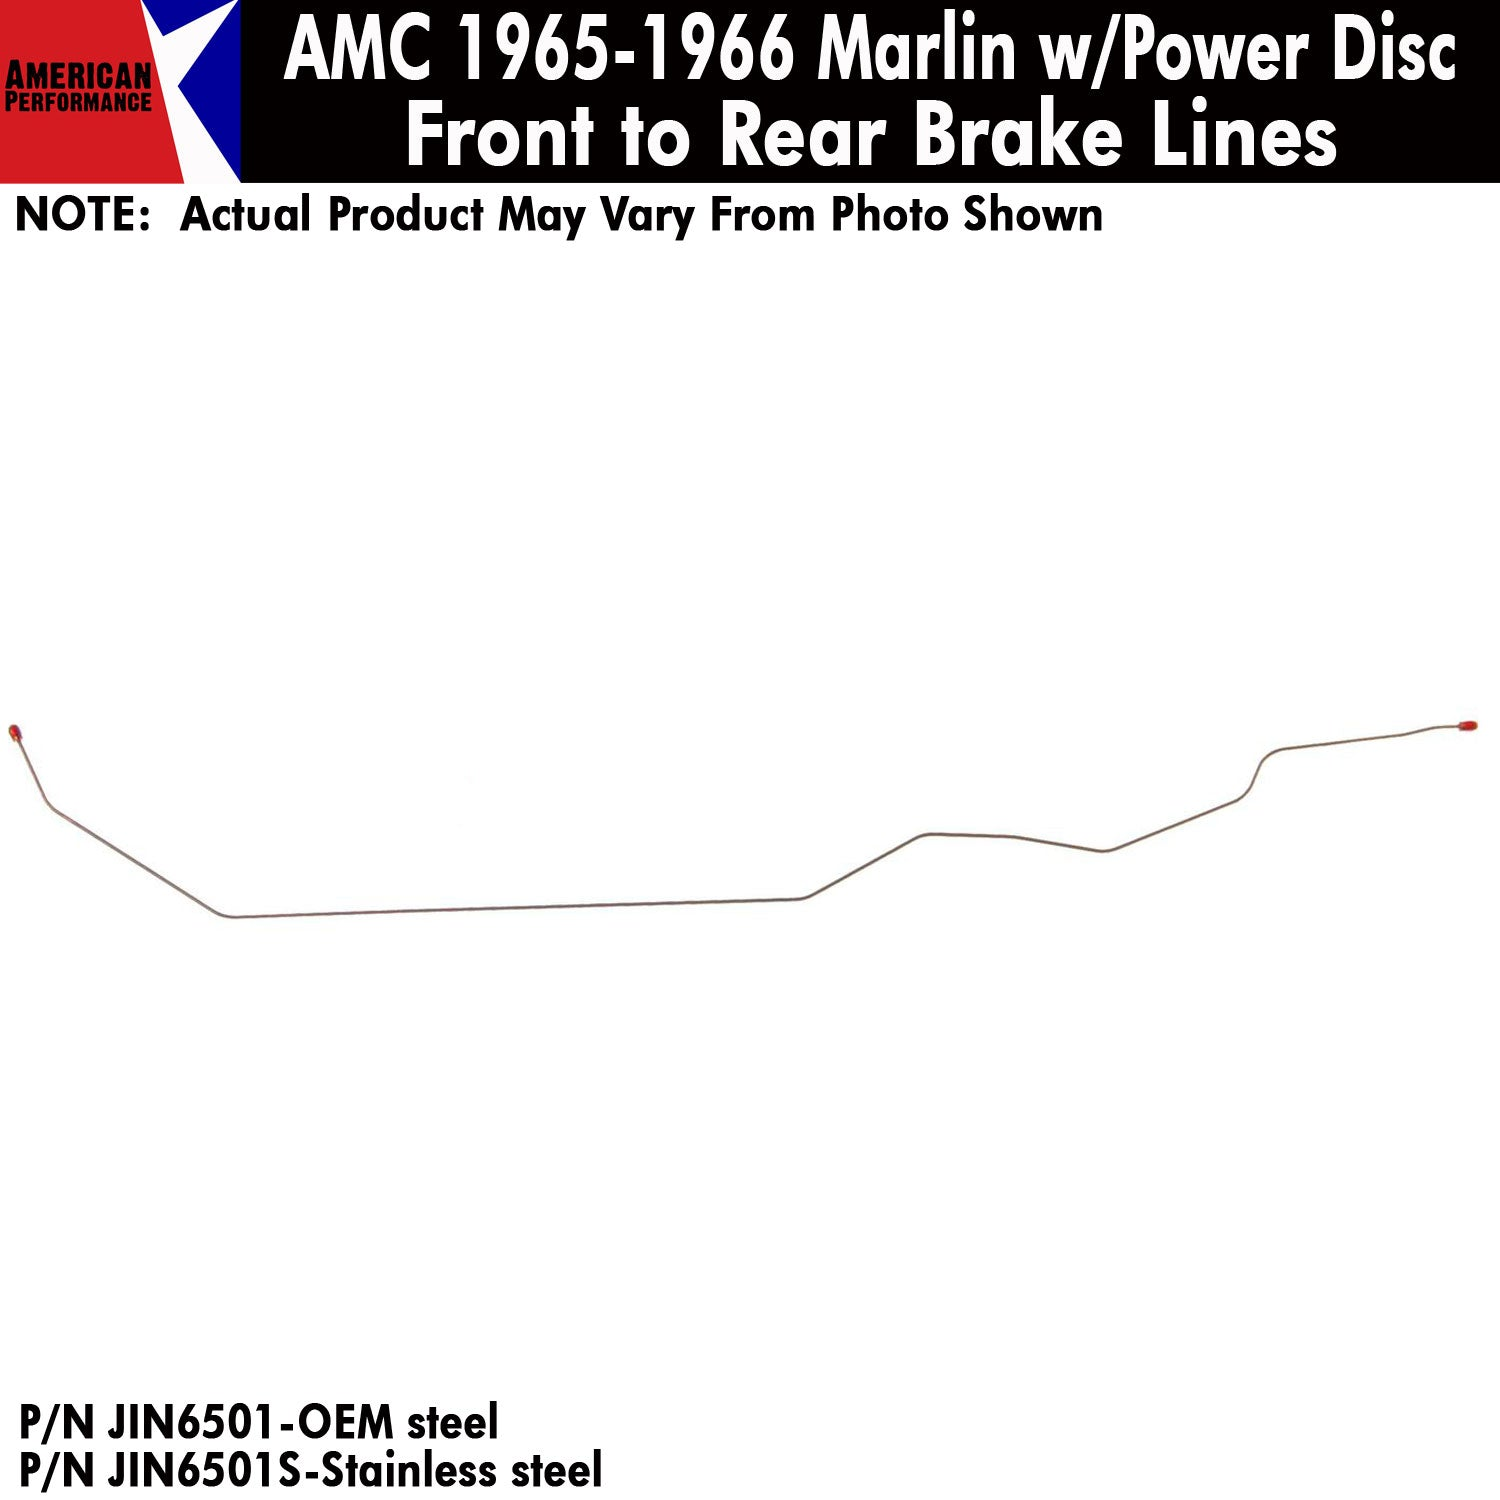 1965-1966 AMC Marlin w/Power Disc Front To Rear Brake Line 1-Piece Kit (2  Variations)